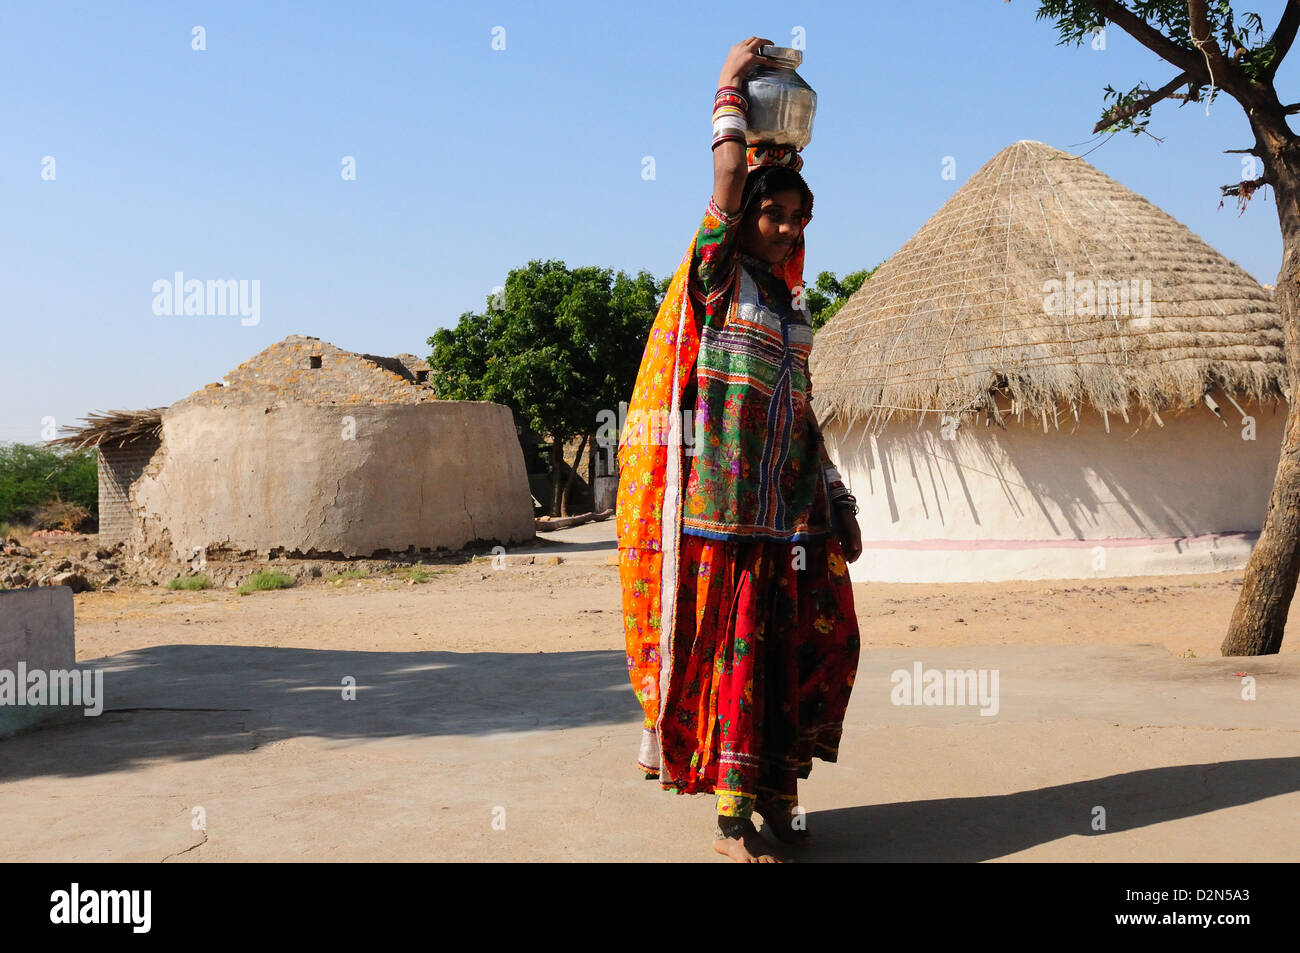 Mir tribal woman carrying water in steel pot, Gujarat, India, Asia - Stock Image